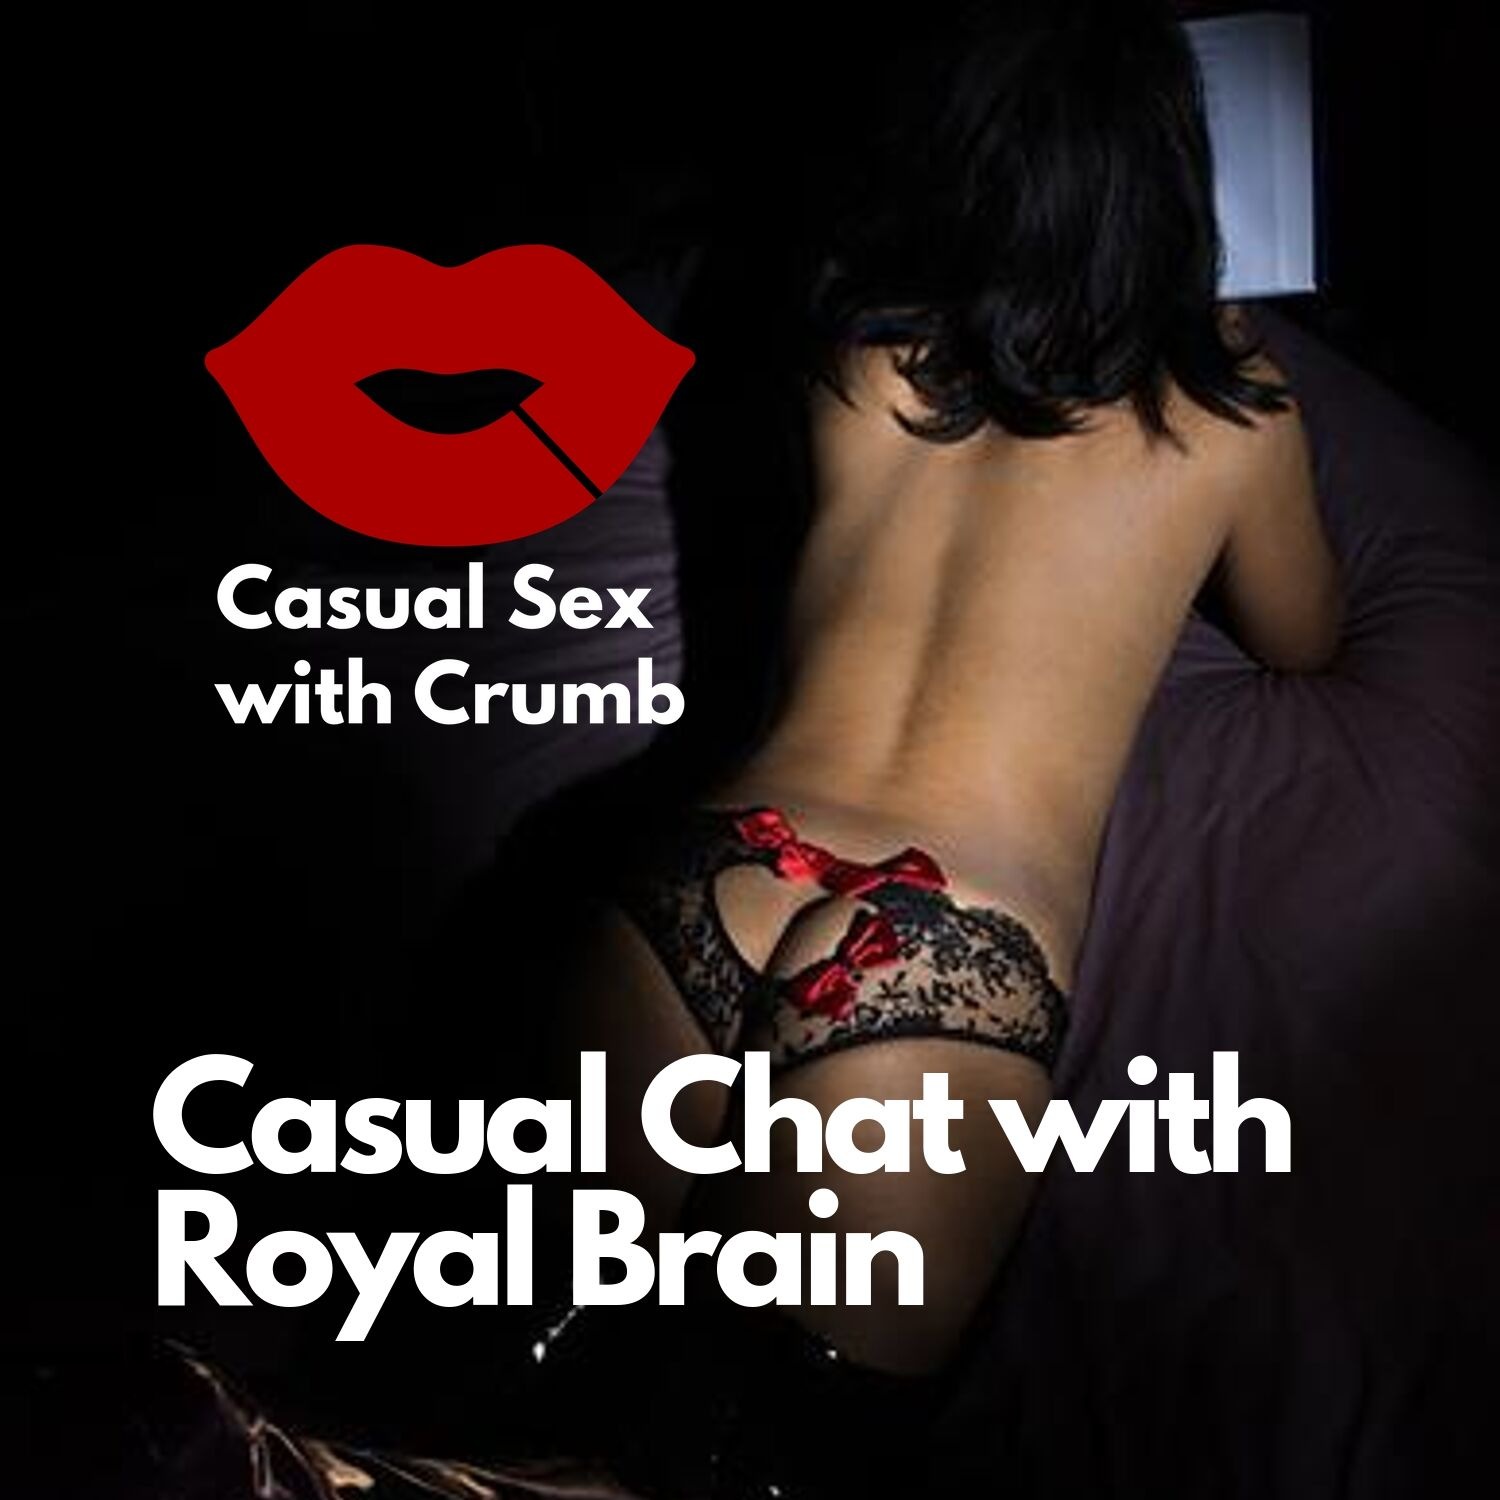 Casual Chat with Royal Brain